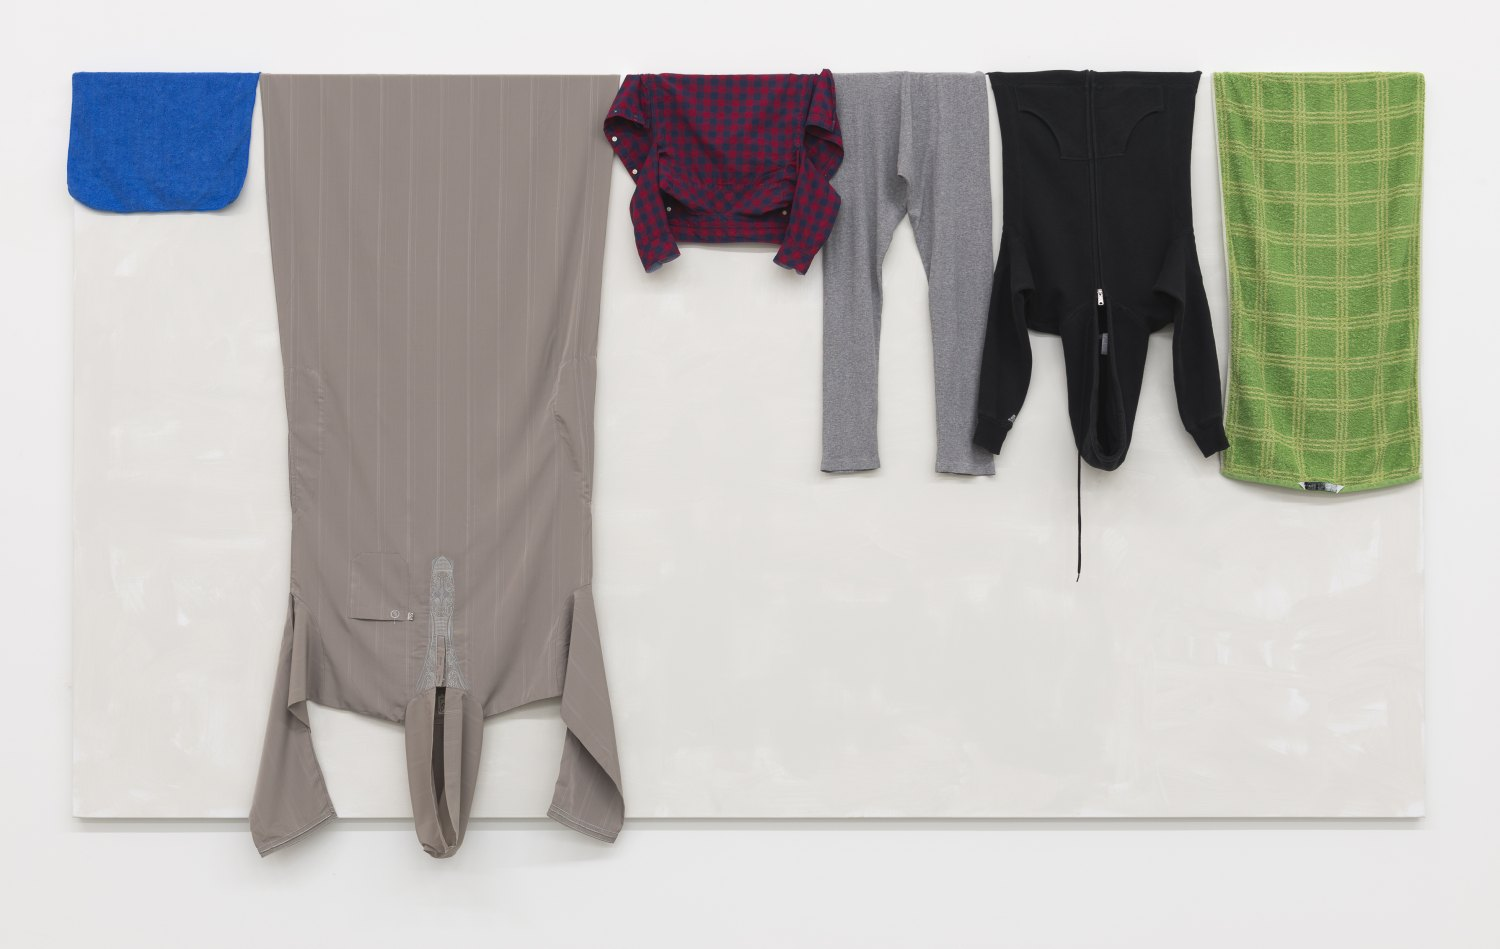 Claire Fontaine  Untitled (Hanging), 2016 House paint on canvas, clothing, towels and dishcloth, 160 x 300 x 3 cm